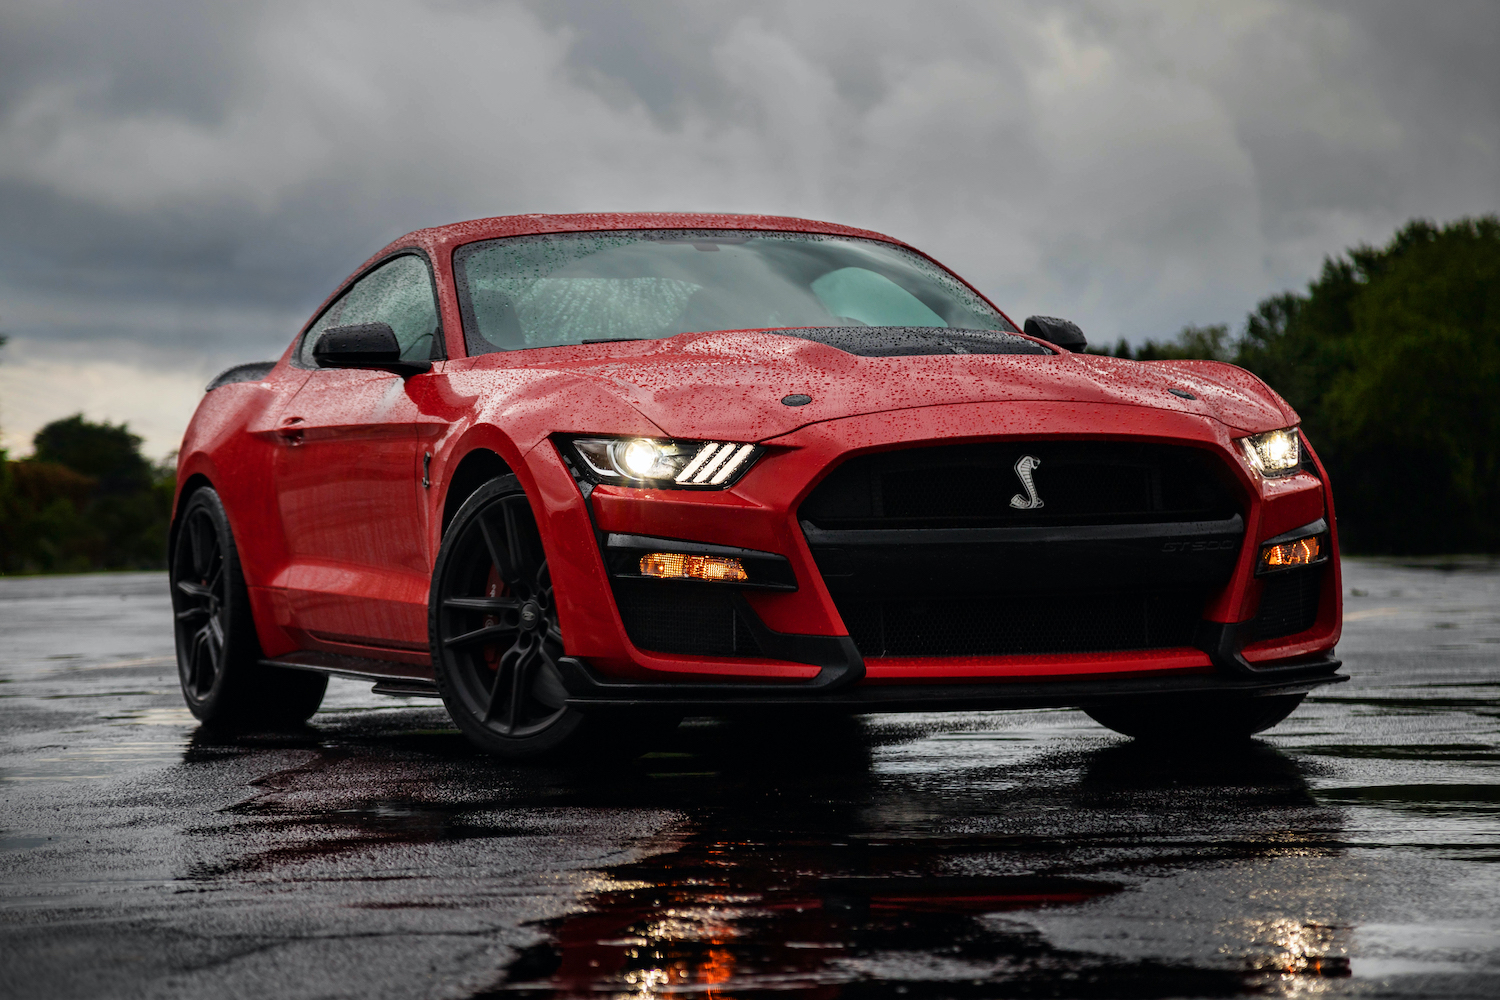 Find out what sets the shelby mustang gt500 apart and see pictures of the shelby mustang gt500. 2021 Ford Mustang Shelby Gt500 New Colors Carbon Fiber Package